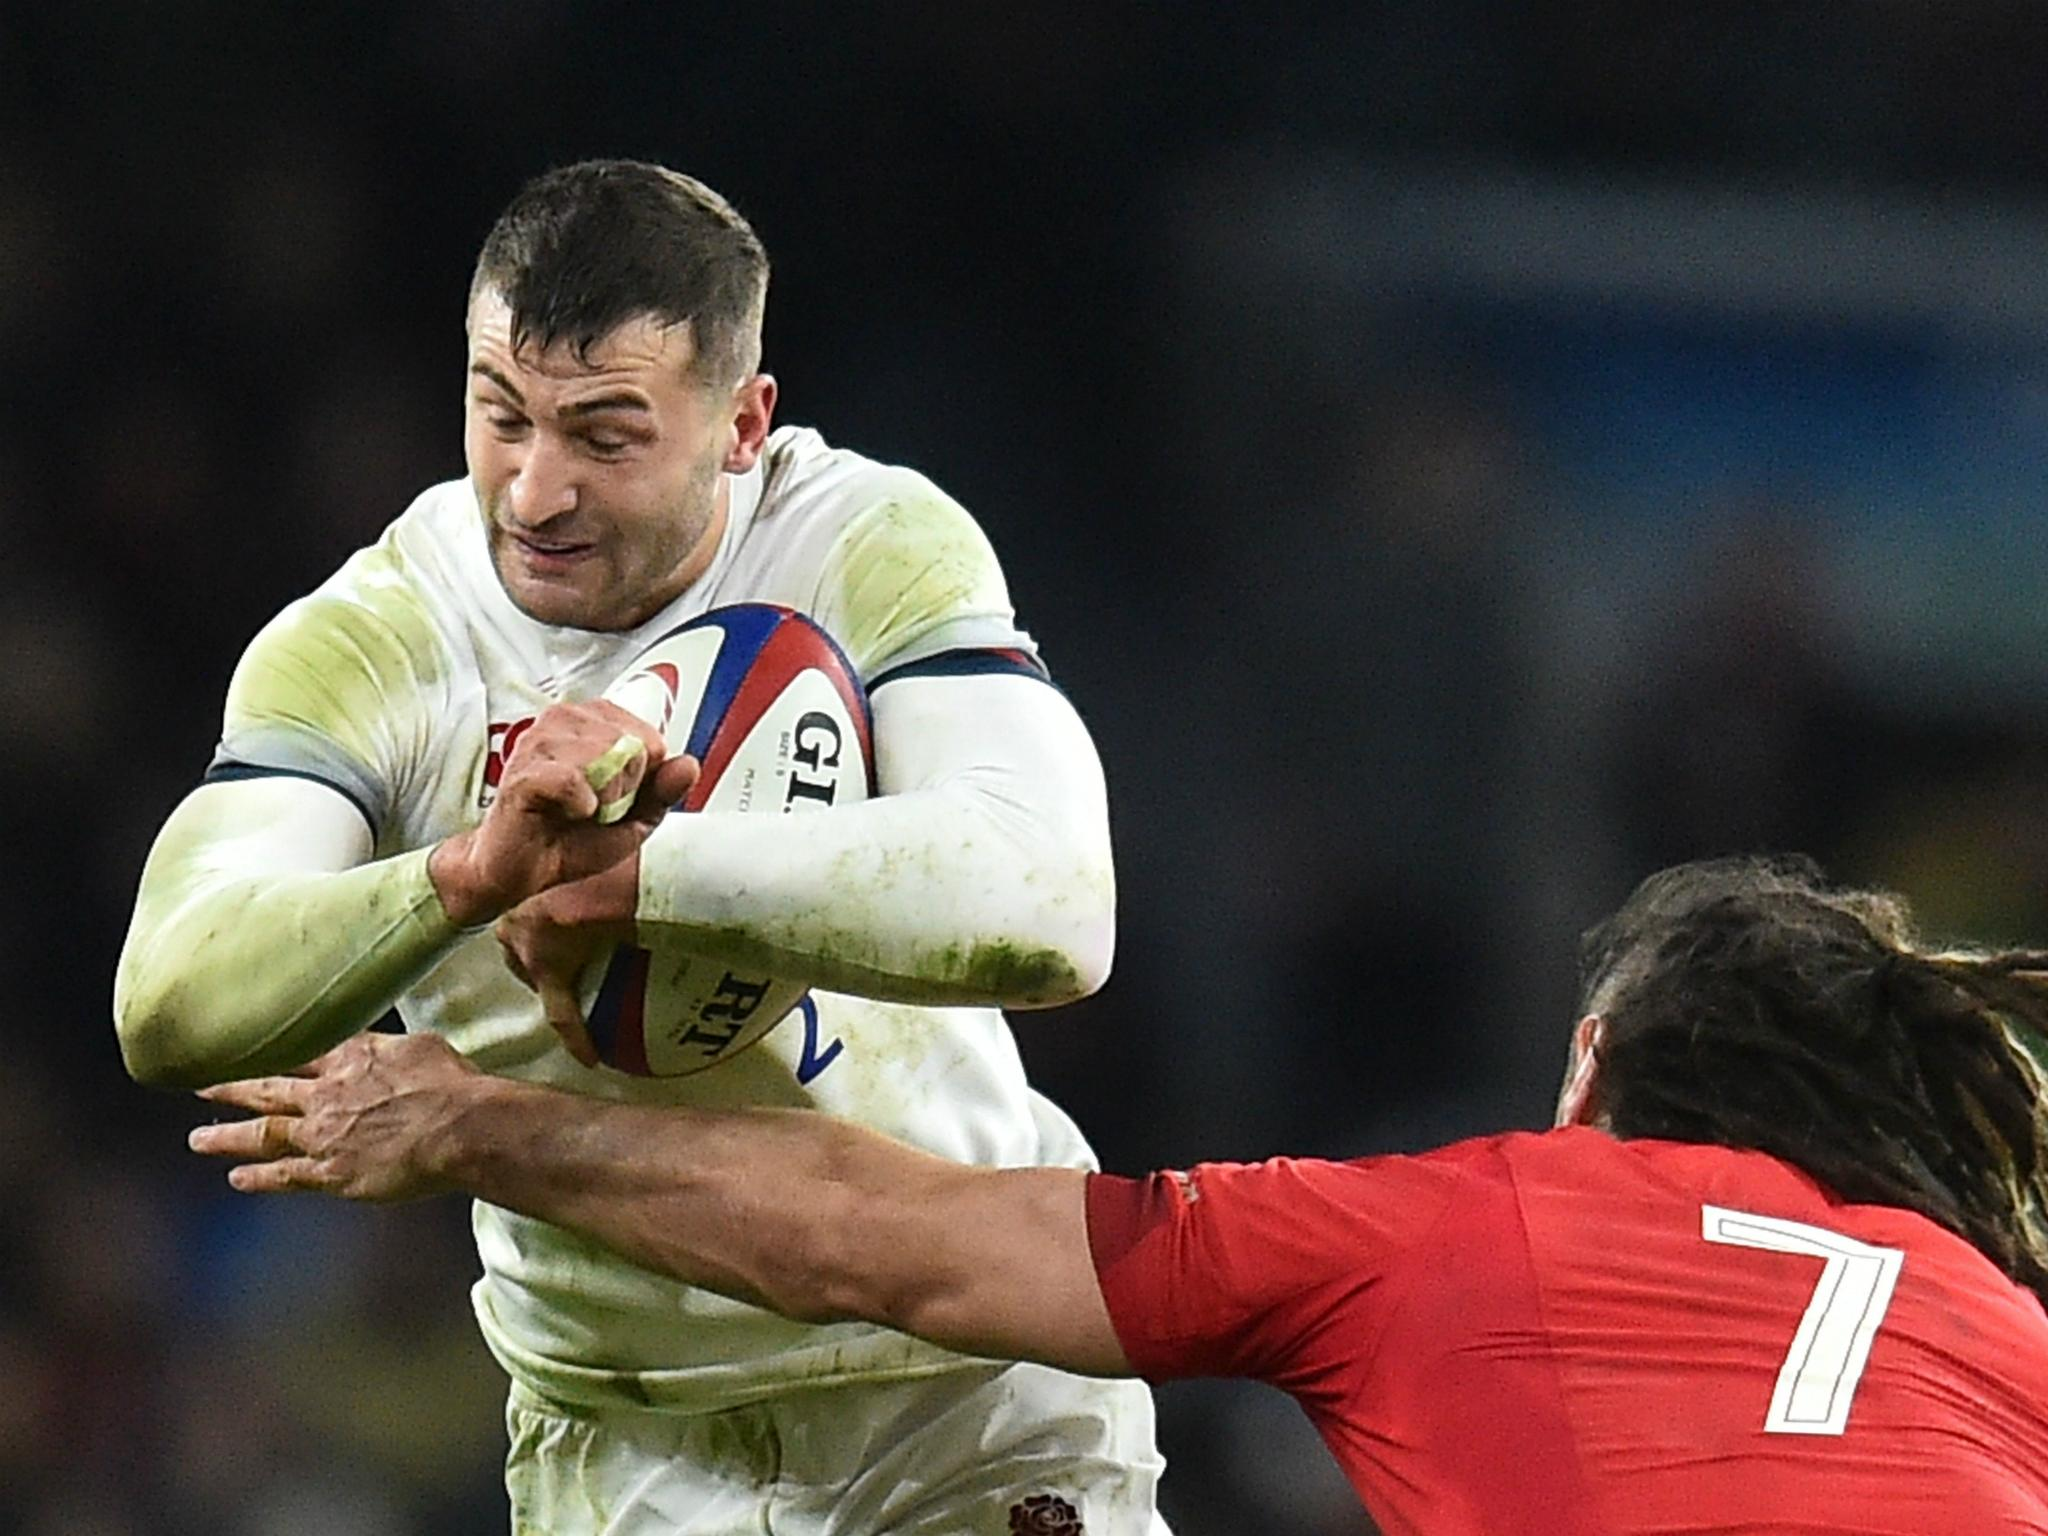 Six Nations 2018 team of the weekend: Teddy Thomas, Jonny May and Owen Farrell star in round two